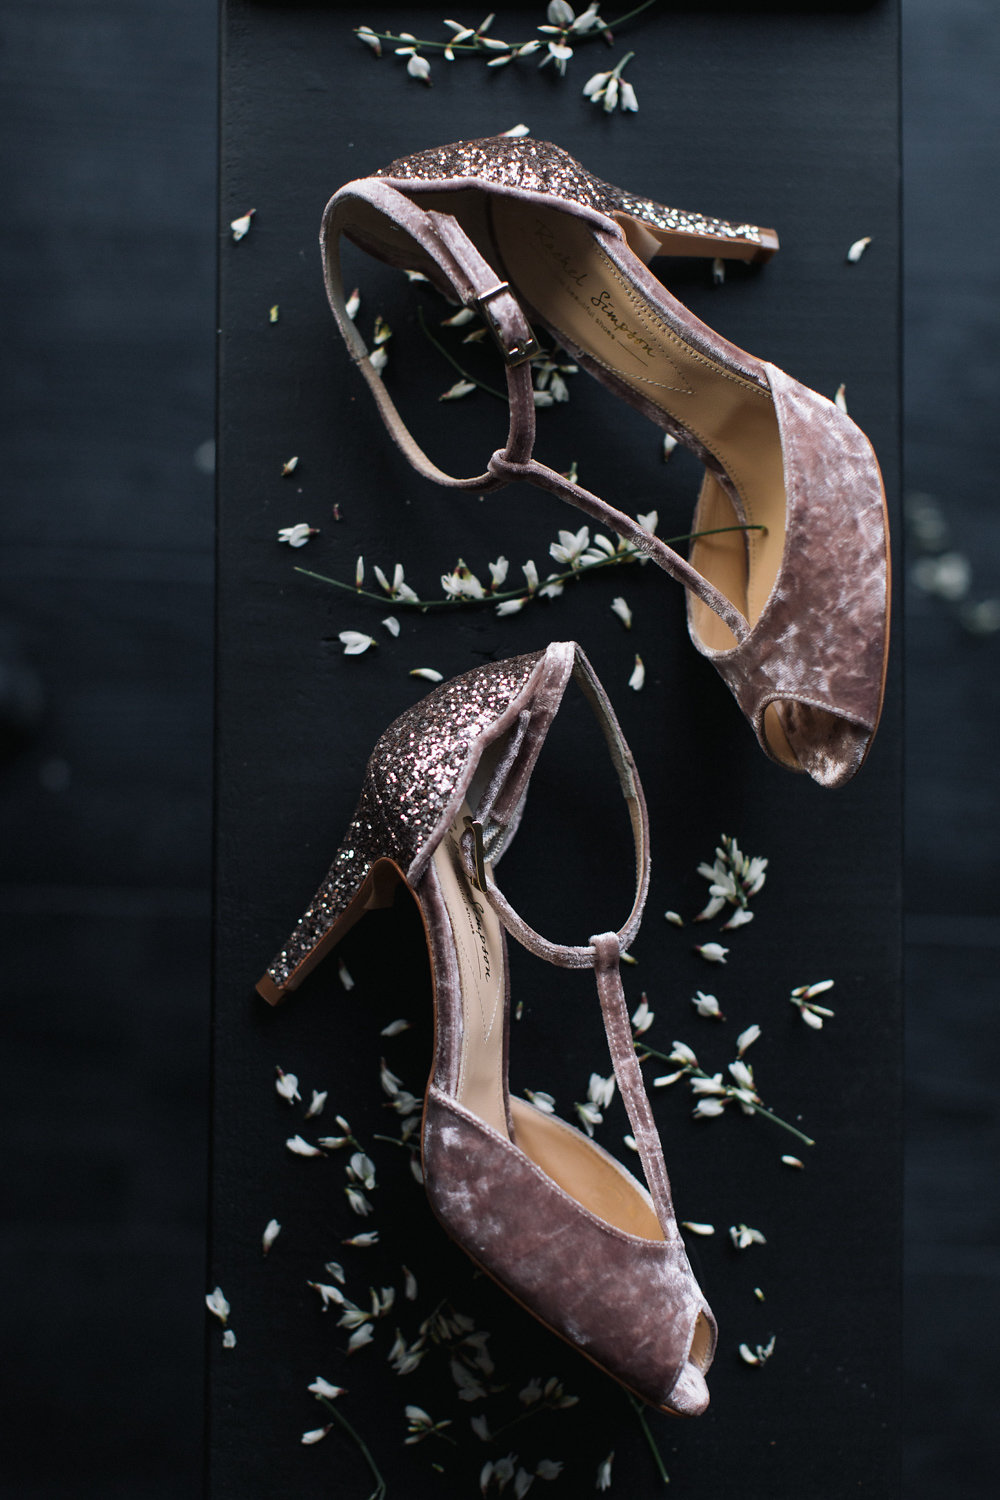 August In Bloom - Wedding heels - Magnolia Dreams (The Bridal Affair)